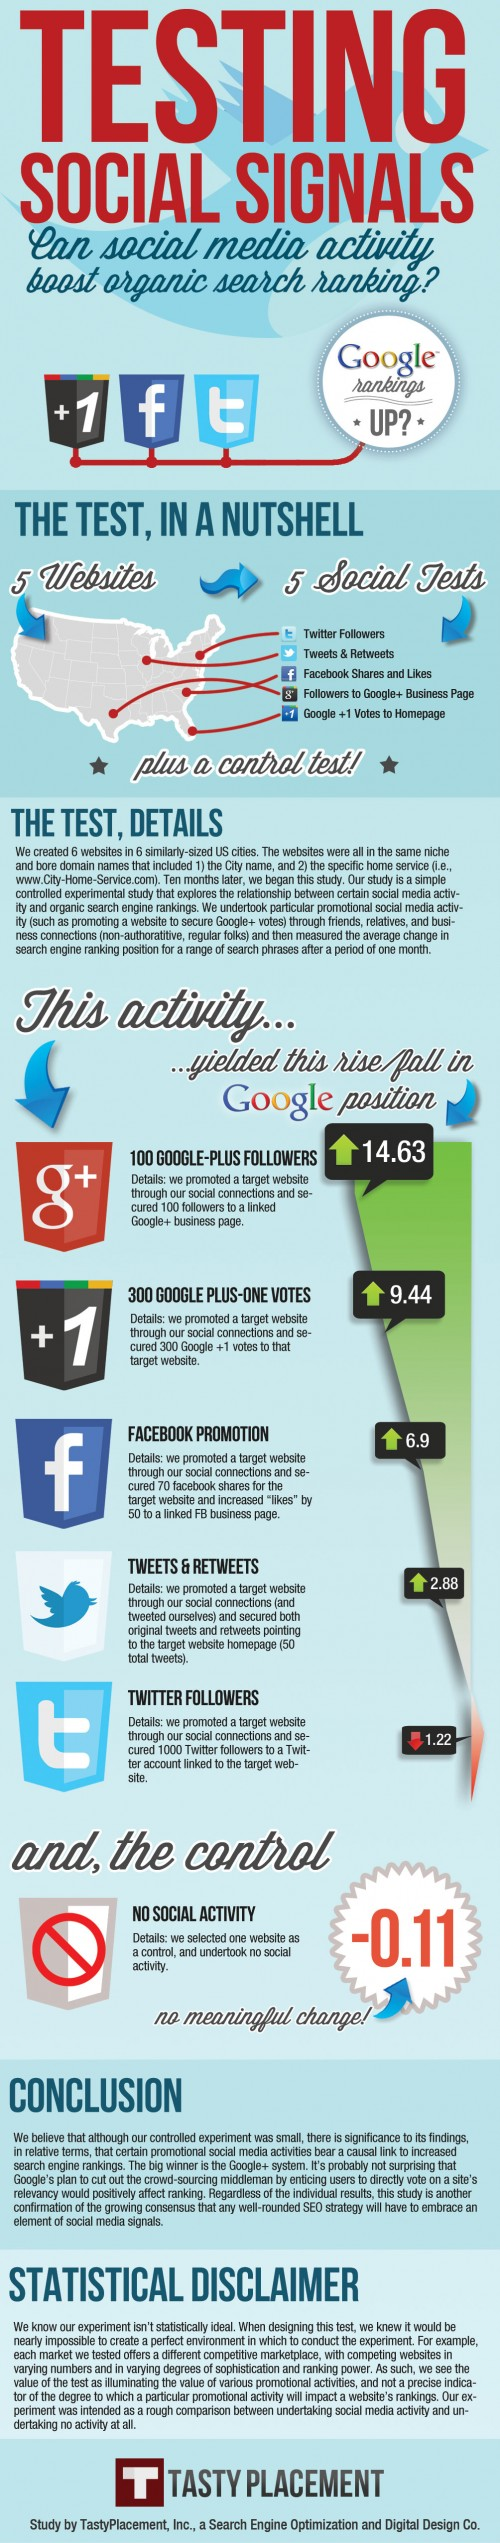 The Impact of Social Media Signals on Search